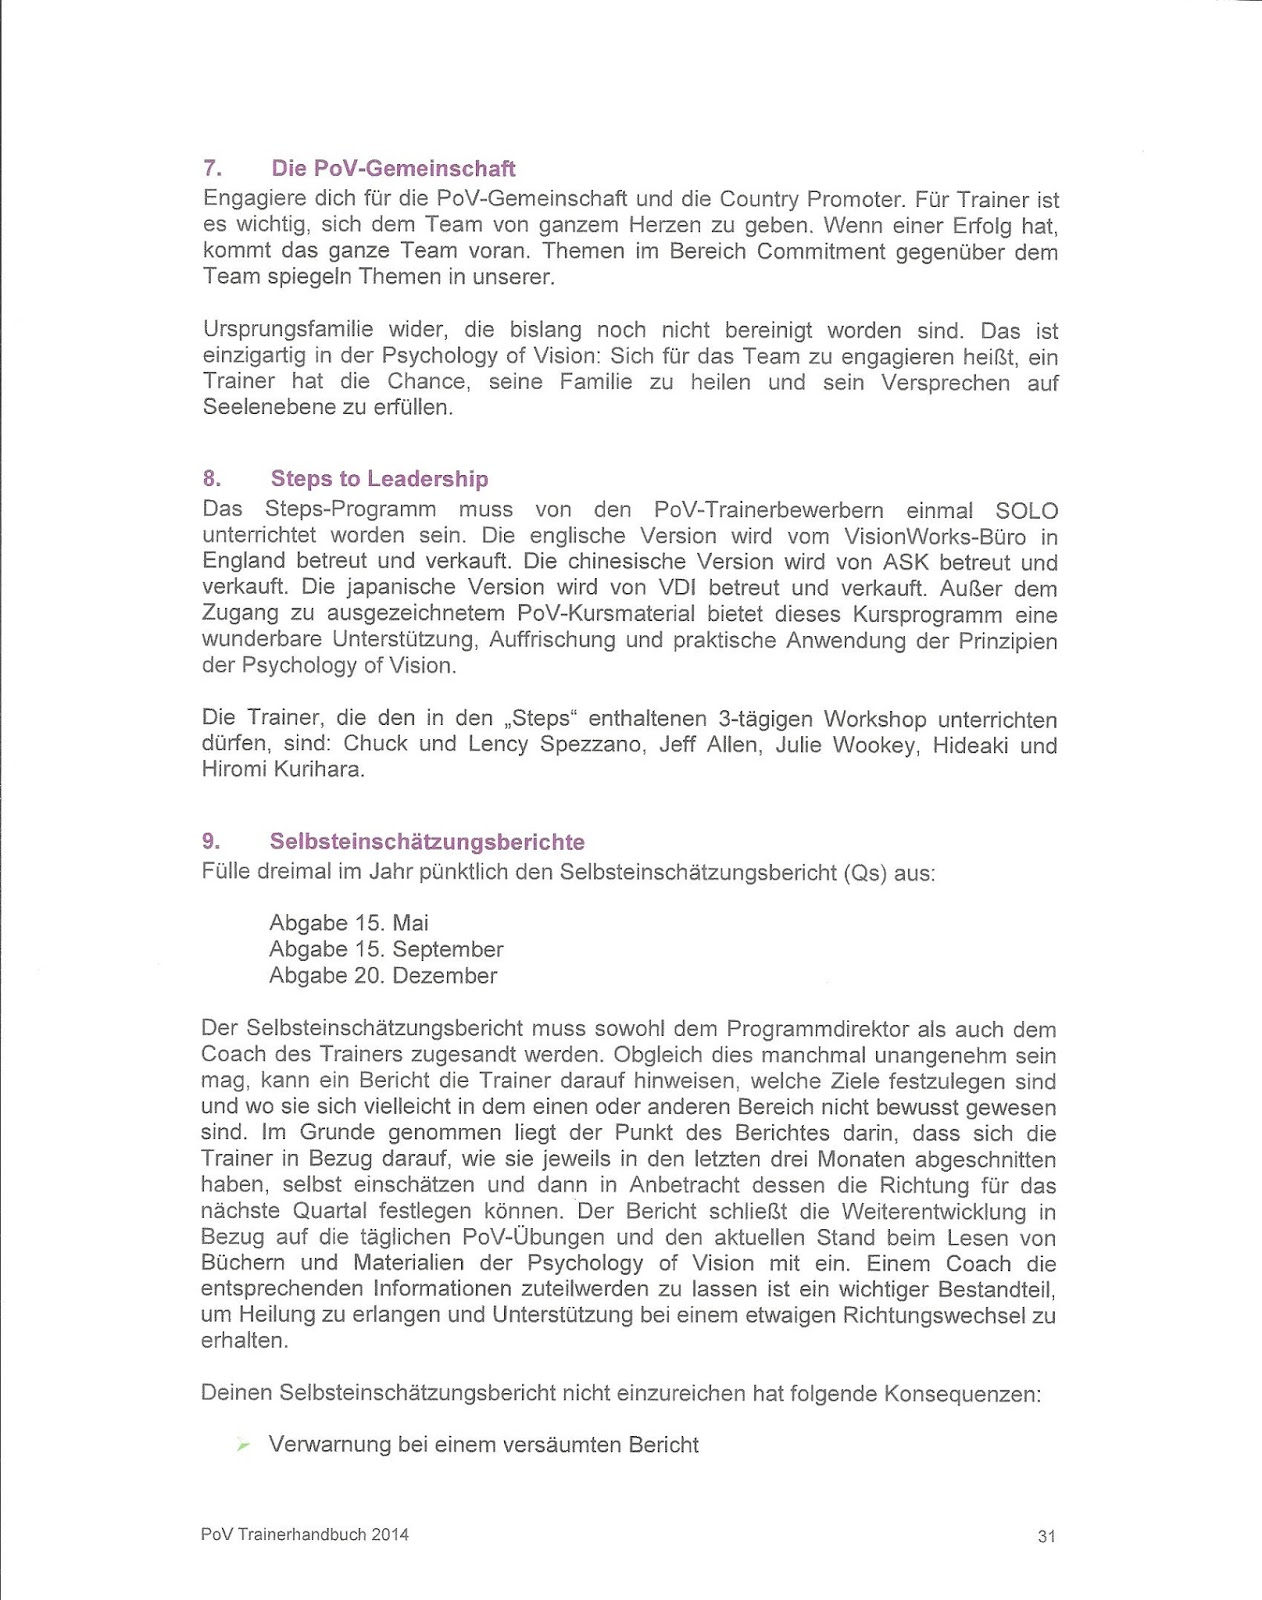 Documents About Spezzano and Associates Ltd. Psychology of Vision ...